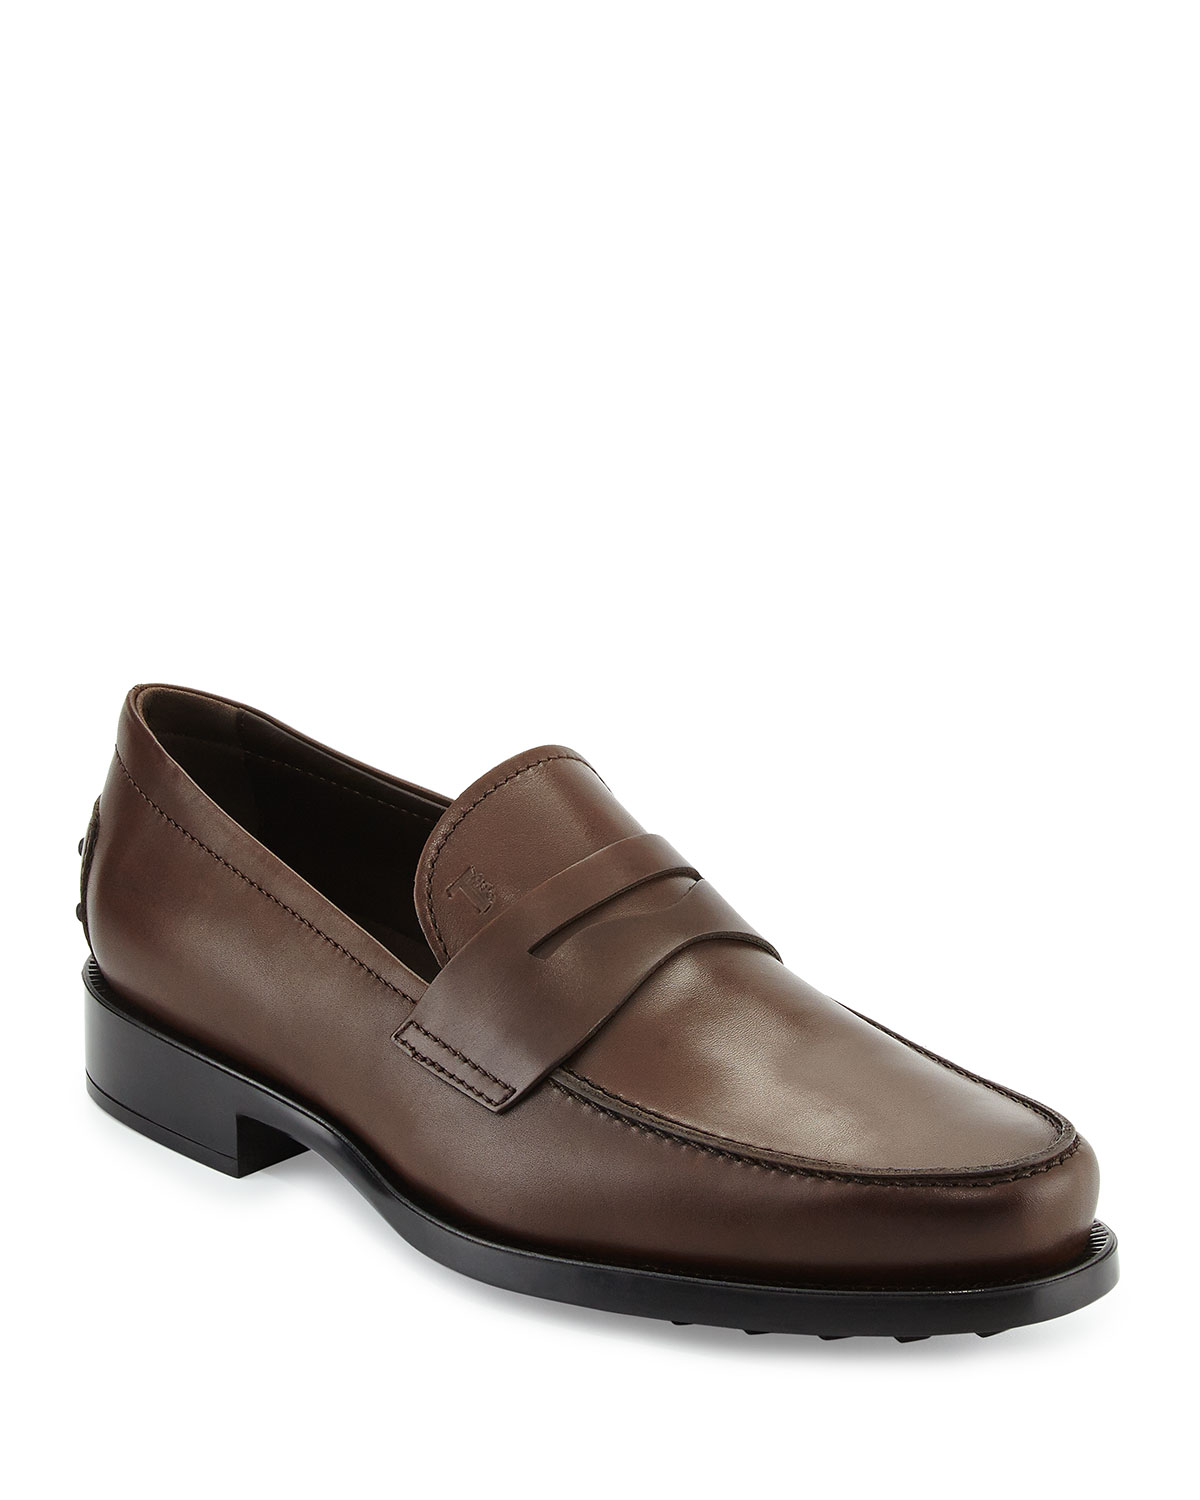 Tod's Neiman Leder Penny Loafer, Braun   Neiman Tod's Marcus dab949